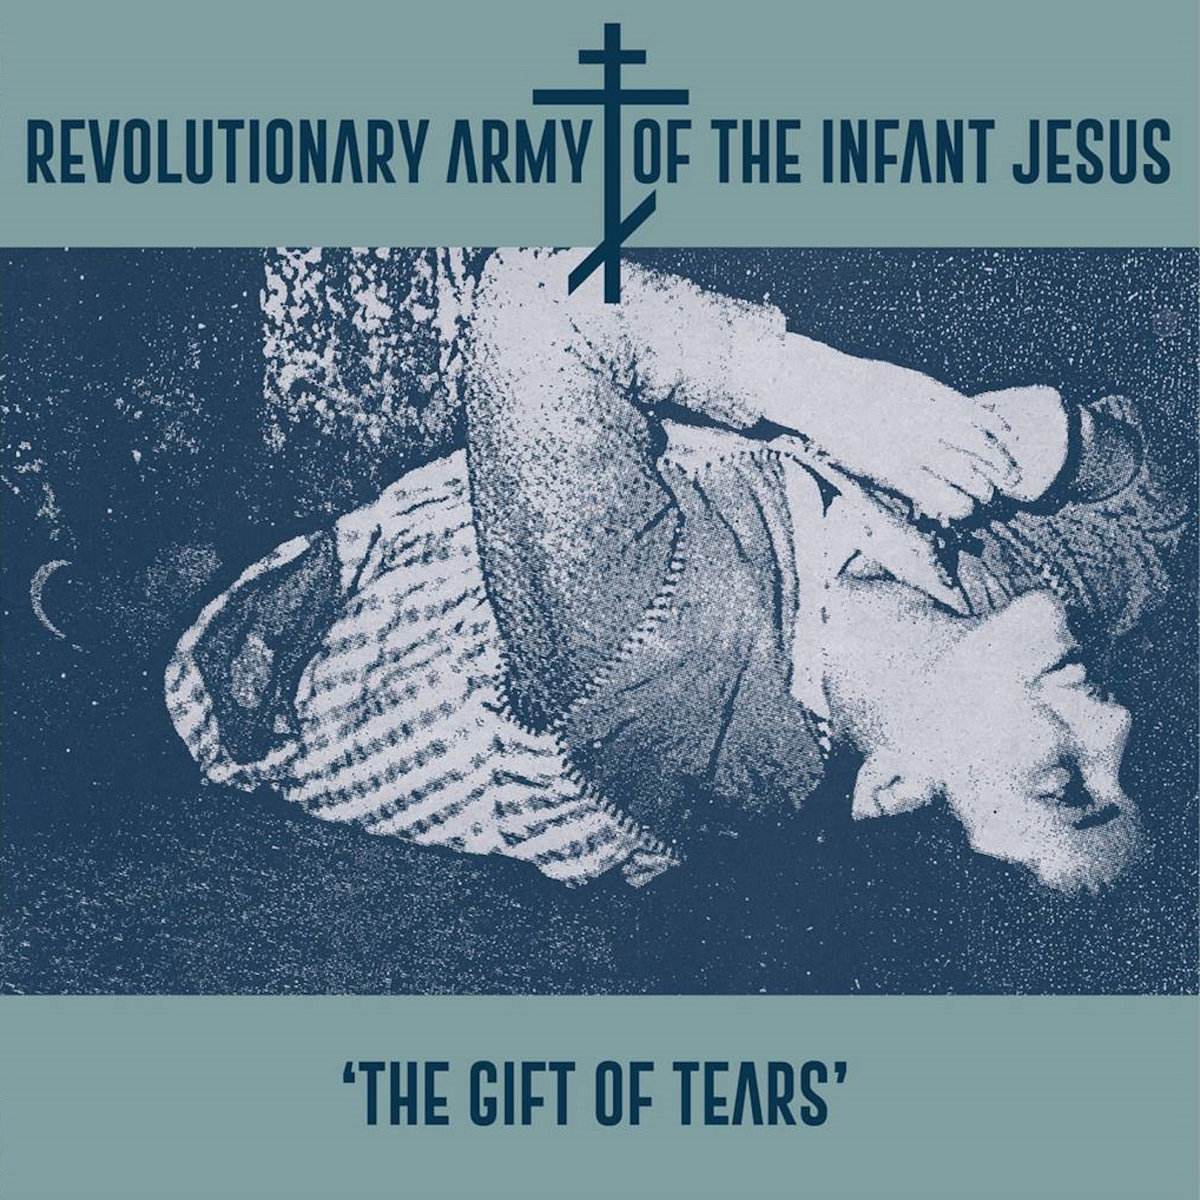 The Gift of Tears | Revolutionary Army of the Infant Jesus